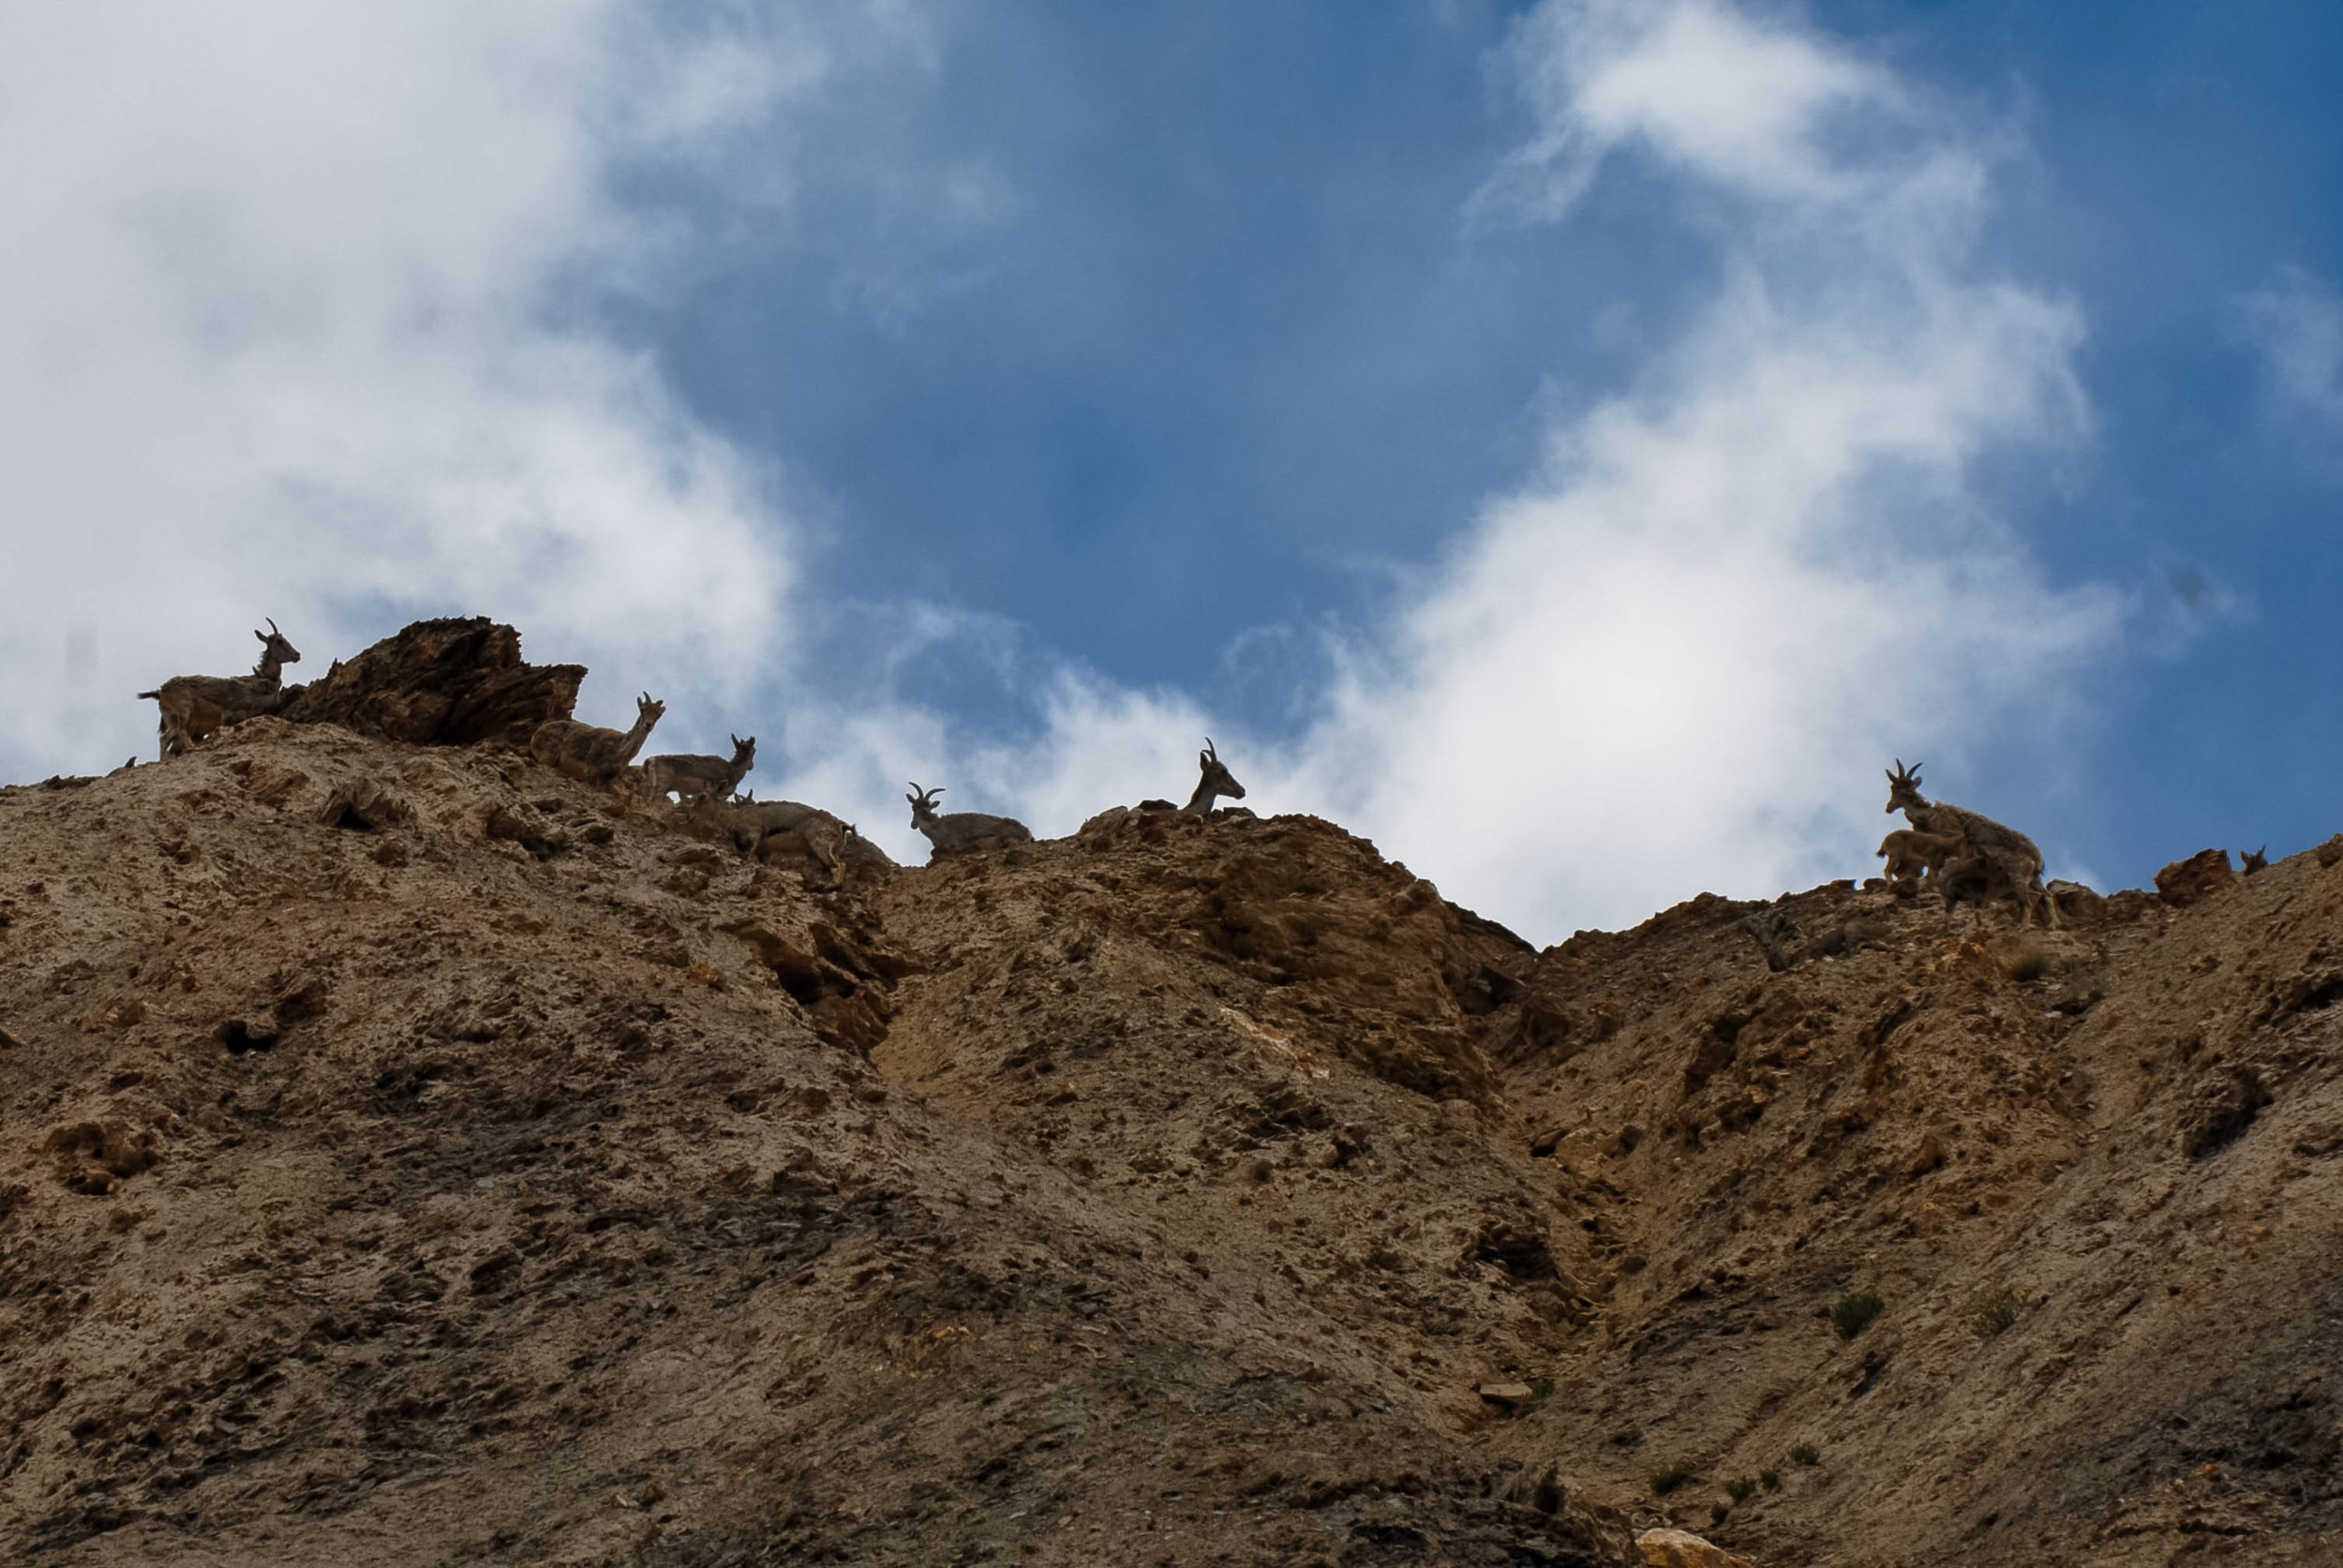 Baral (Blue Sheep) live in the cliffs of the valley.